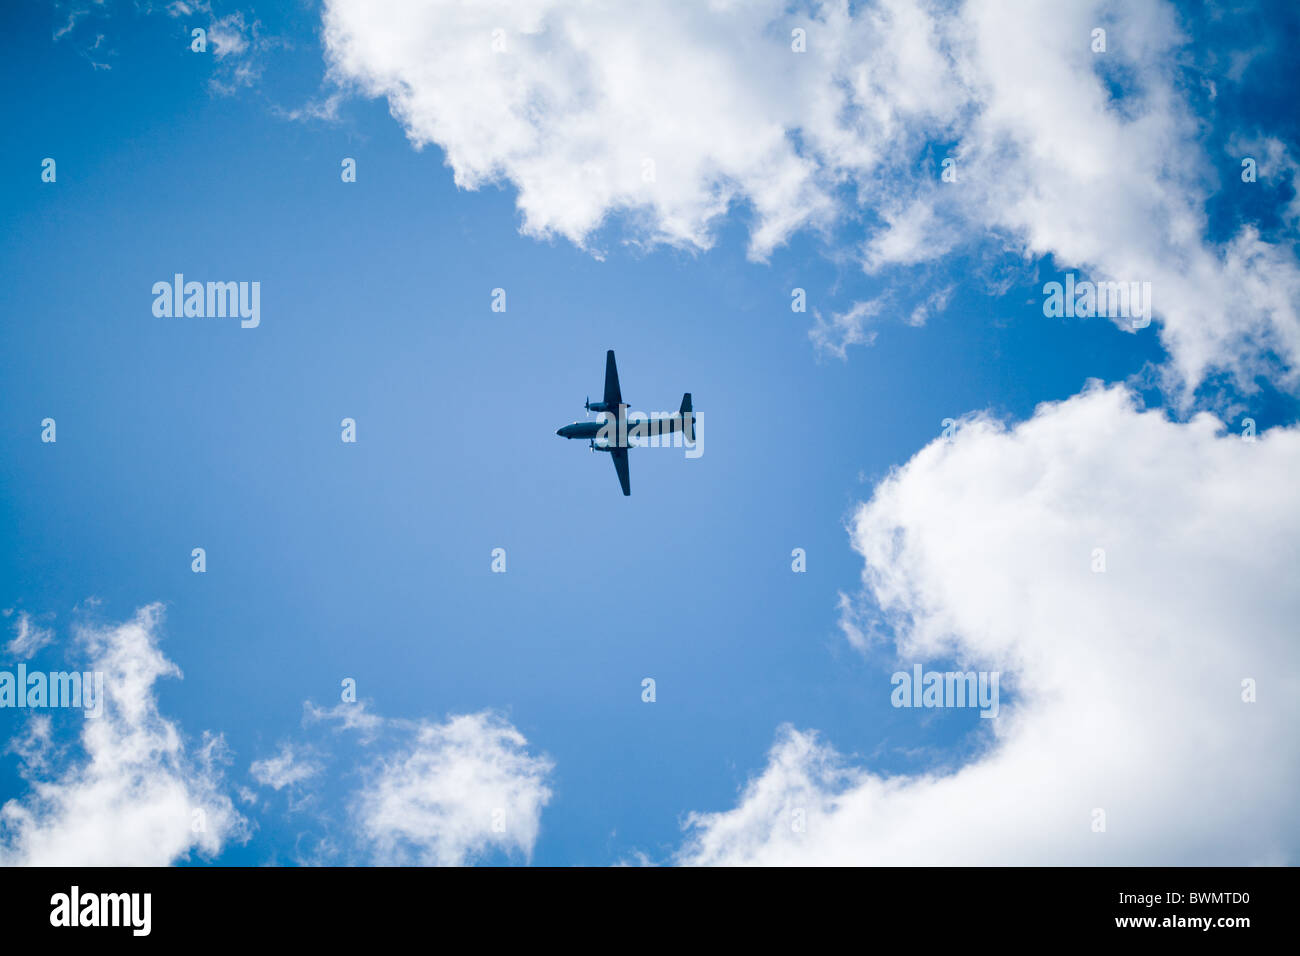 Photo of flying aircraft in bright cloudy sky - Stock Image